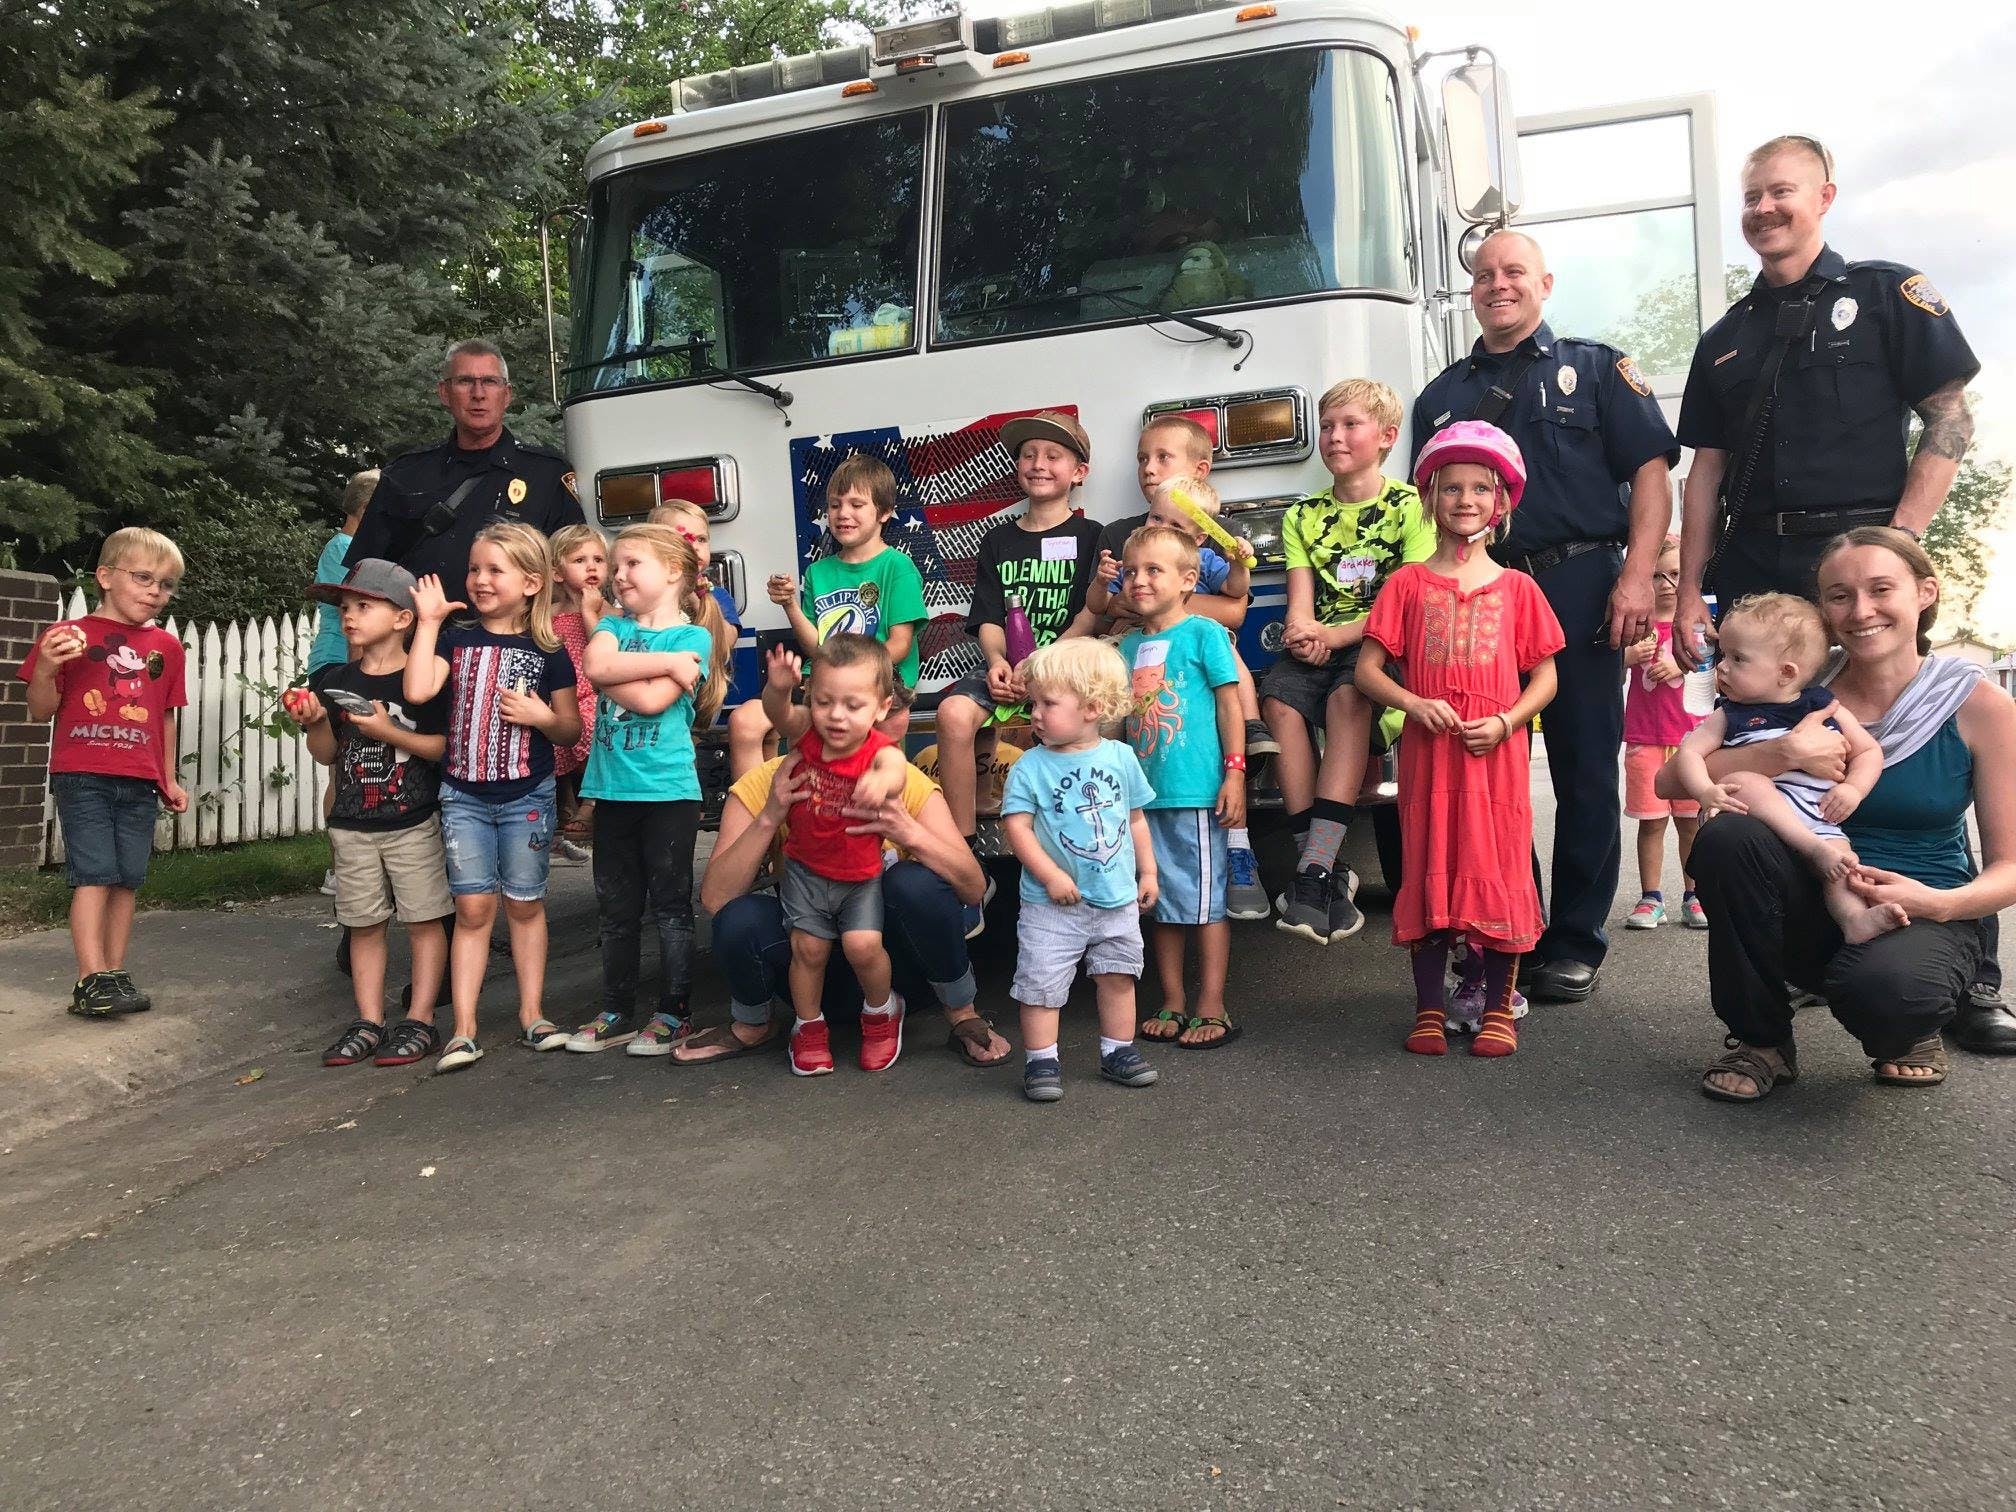 Arvada Fire joining the community